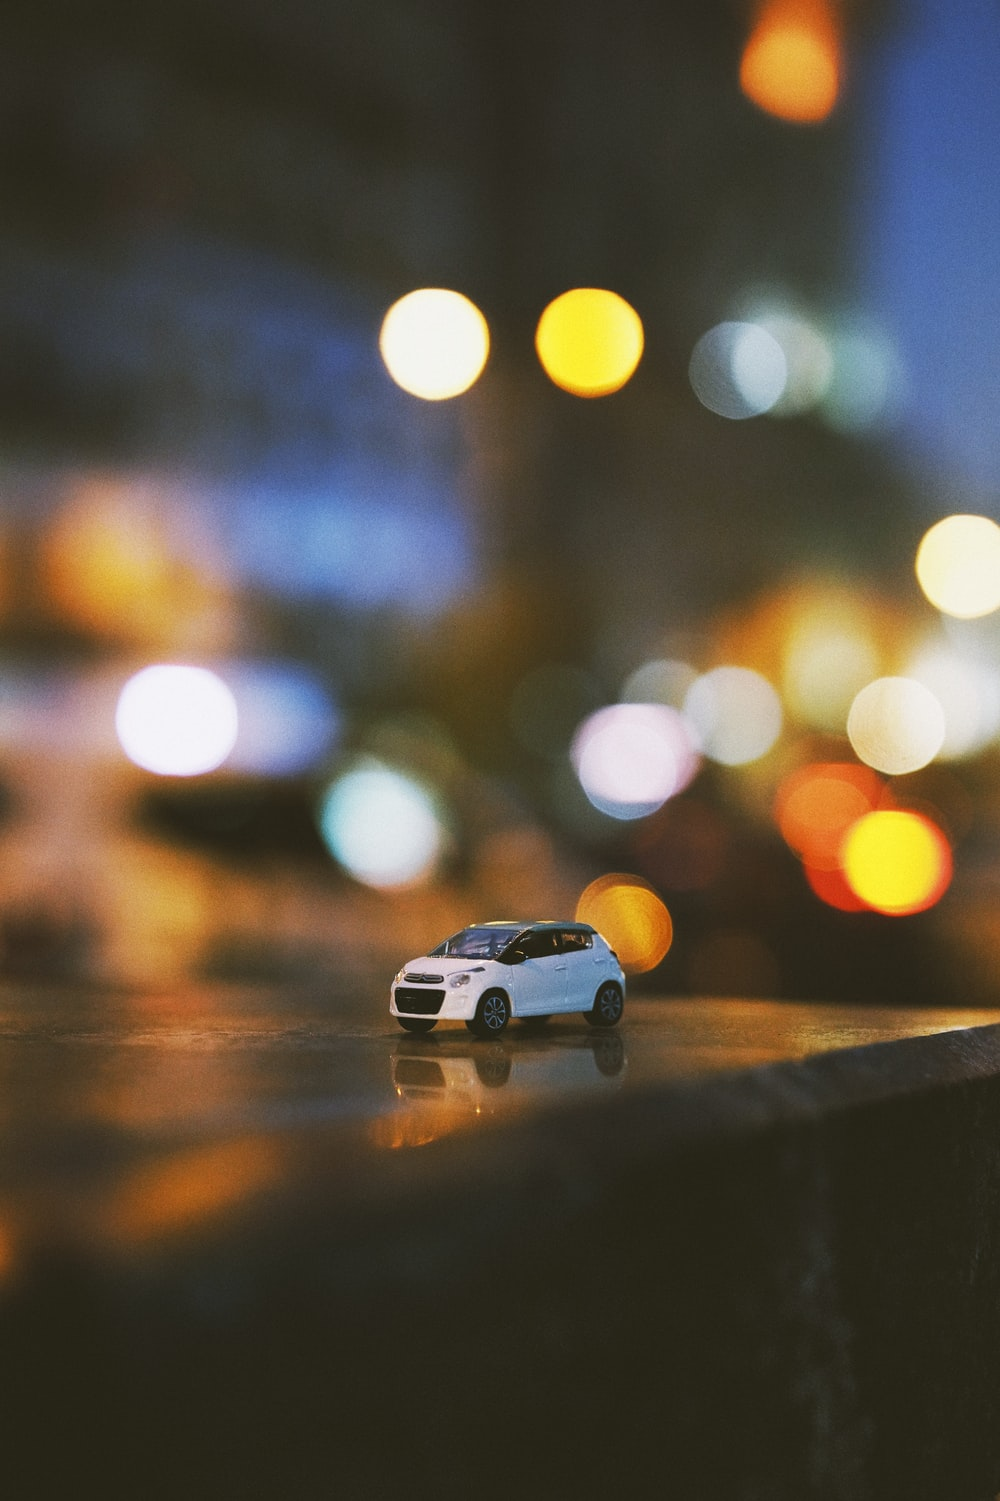 bokeh photography of white car miniature